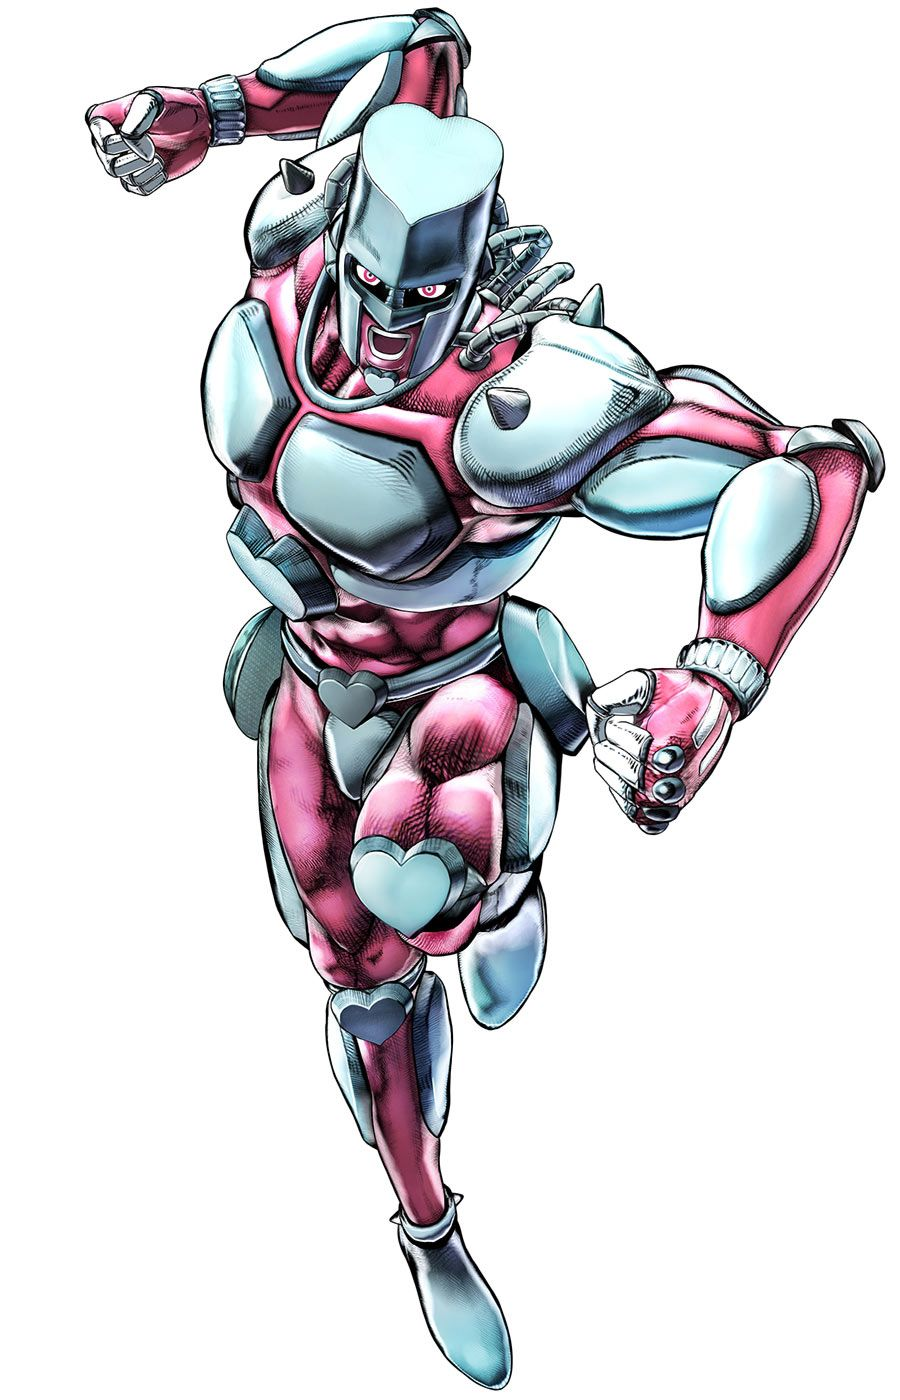 Crazy Diamond Jojo Bizarre Jojo Anime Jojo S Bizarre Adventure Stands View an image titled 'crazy diamond art' in our jojo's bizarre adventure: crazy diamond jojo bizarre jojo